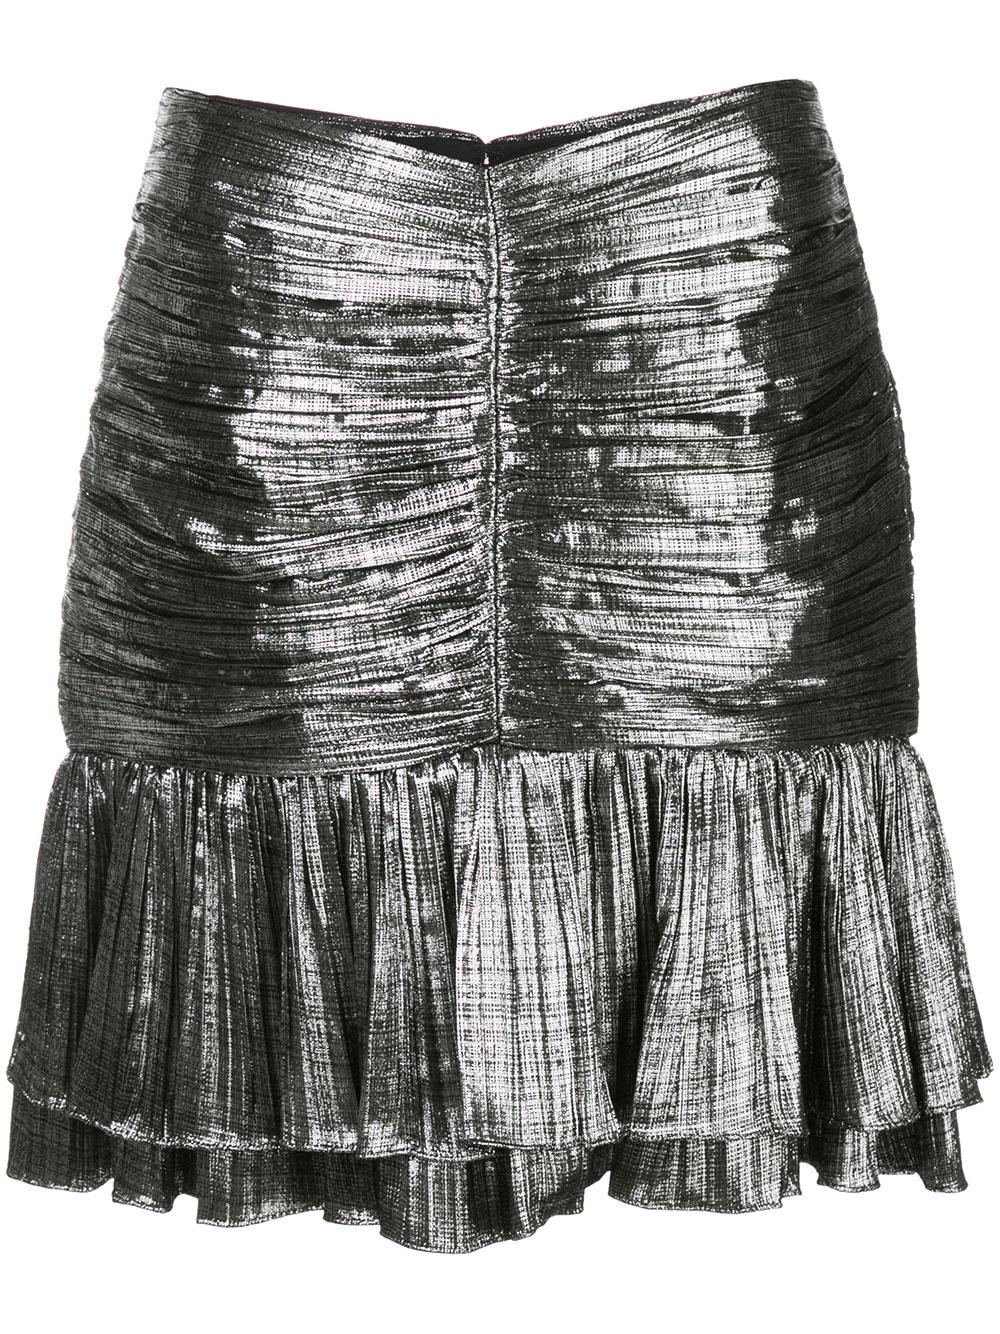 Metal Plisse Ruffle Mini Skirt Item # 120-3008-M